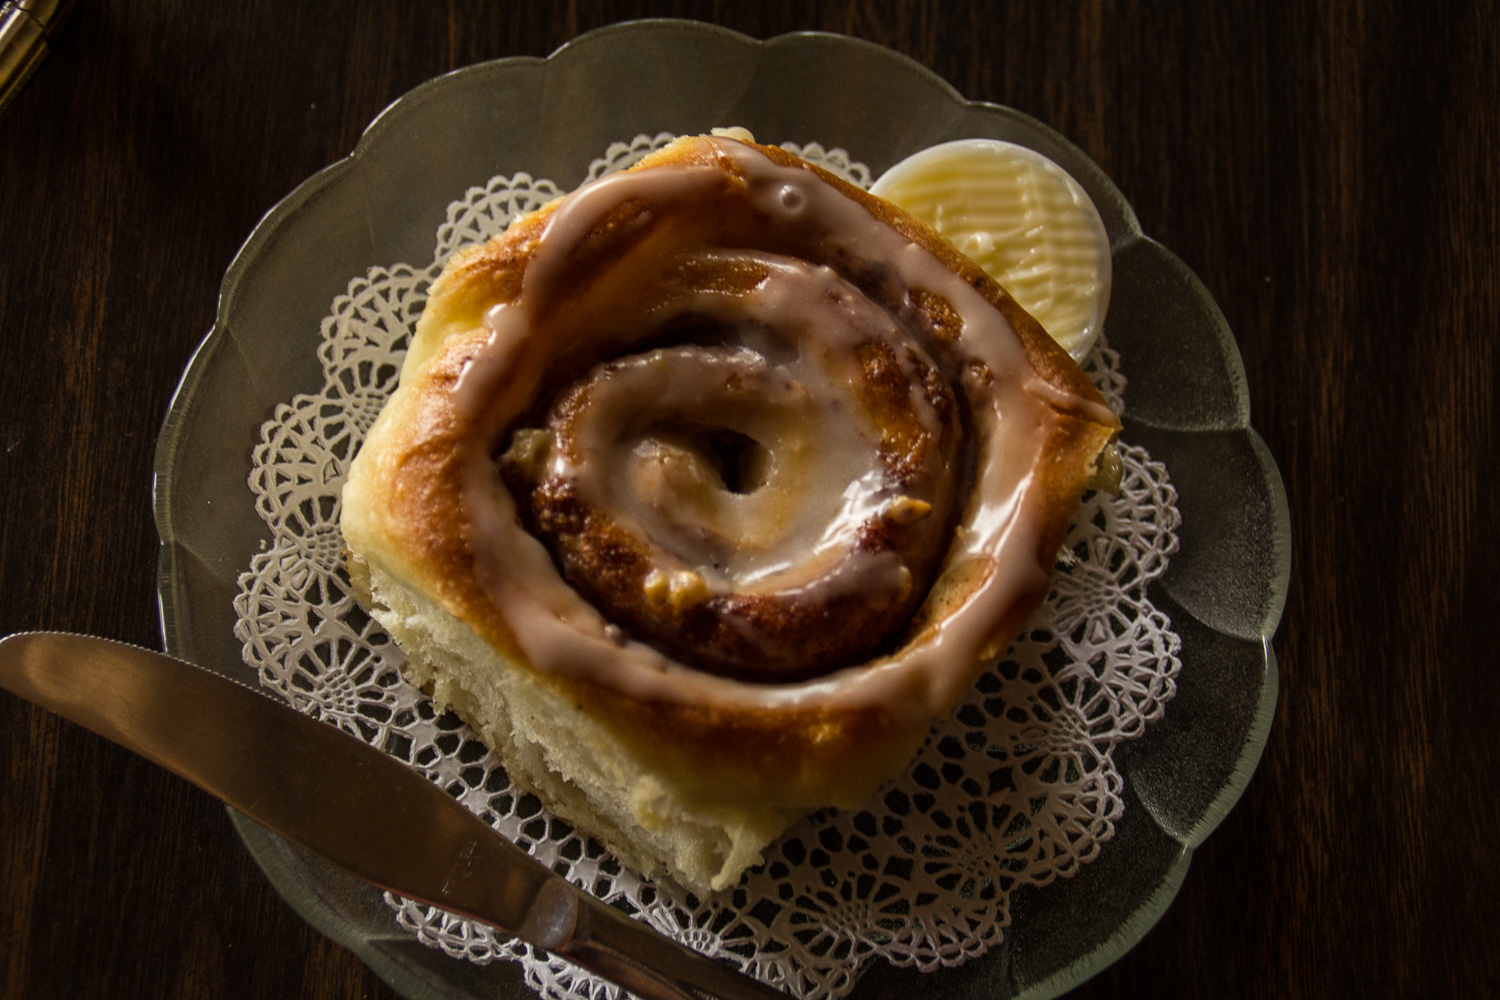 Cinnamon Bun at Chute Lake. Photo by Helena McMurdo/Endless Picnic